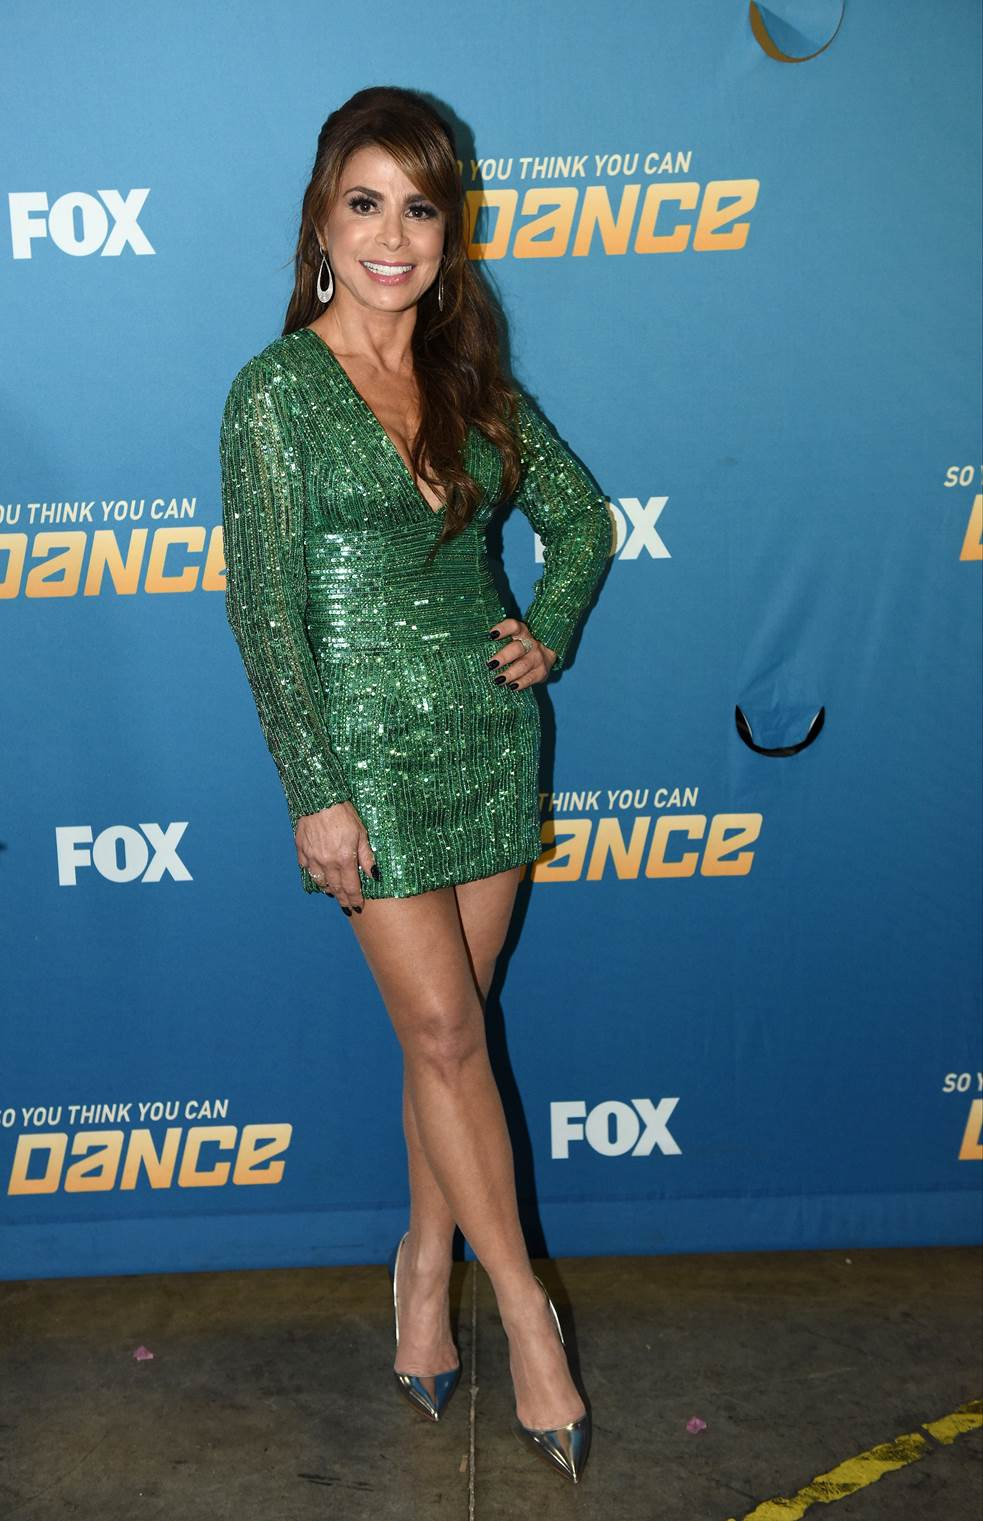 Paula Abdul     Dress: Aiisha   Shoes: Christian Louboutin  Jewelry: Young's Fine Jewelry  Nails: Merricures